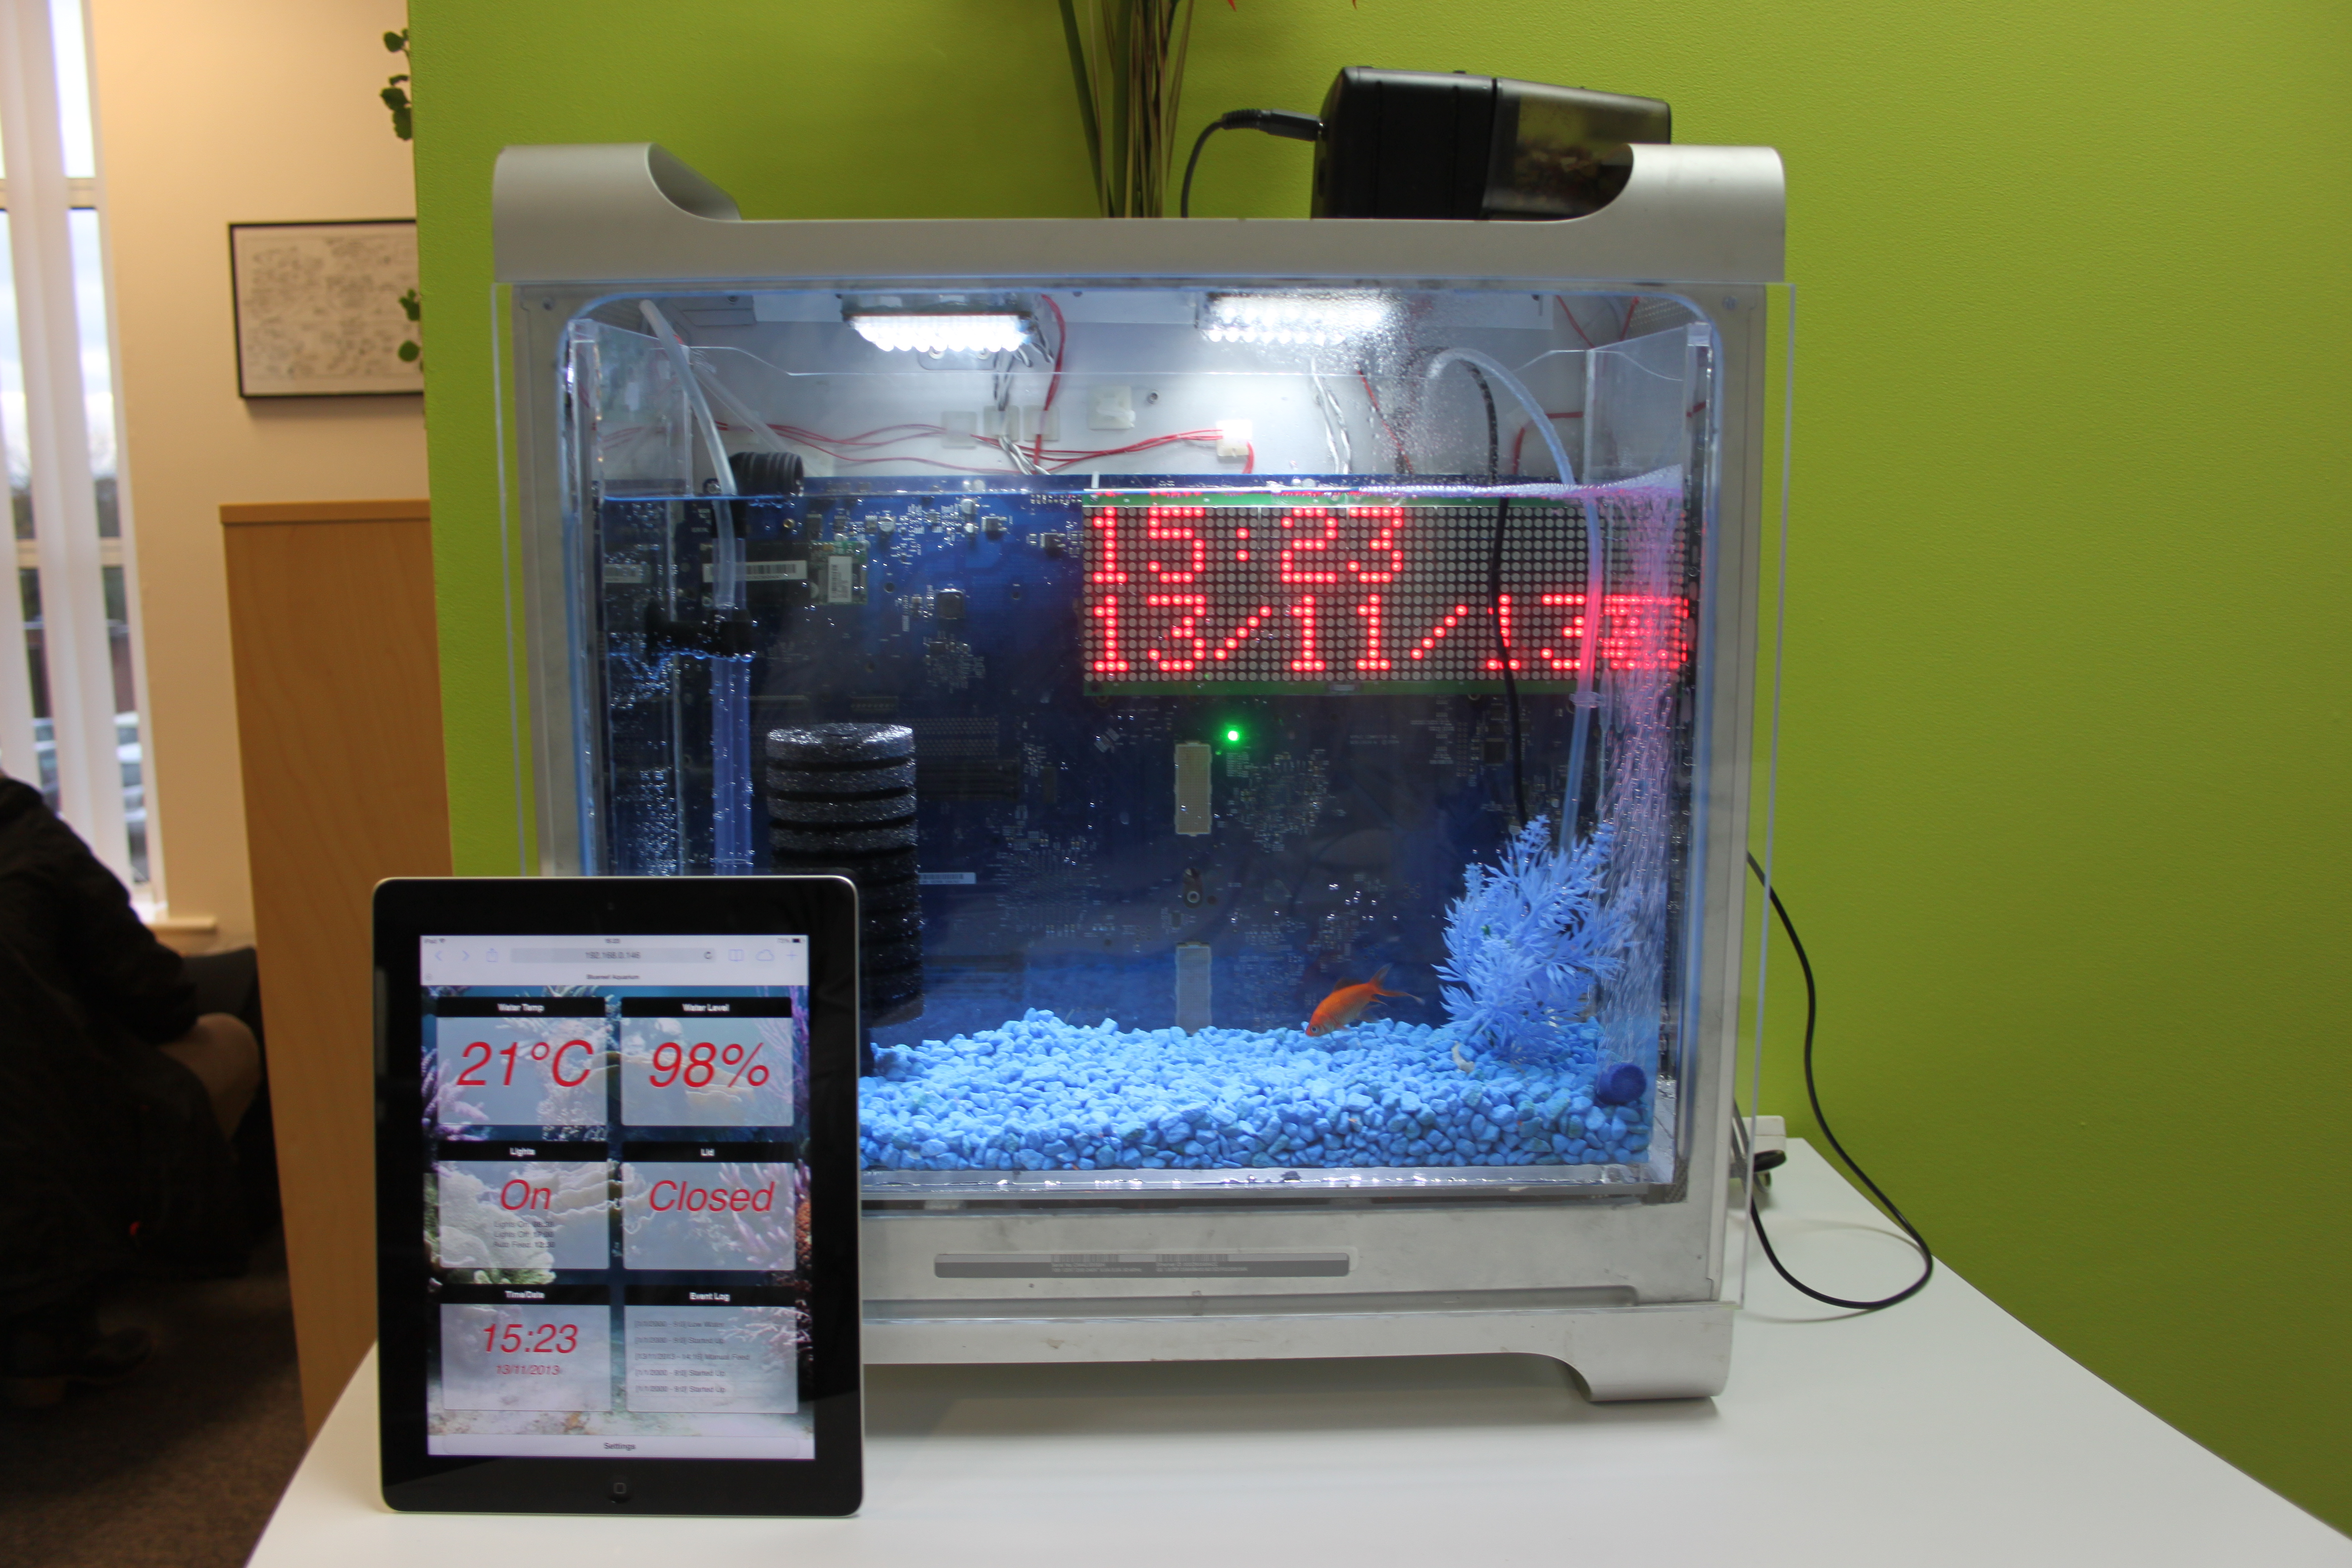 The internet enabled fishtank hayden kibble for Smart fish tank